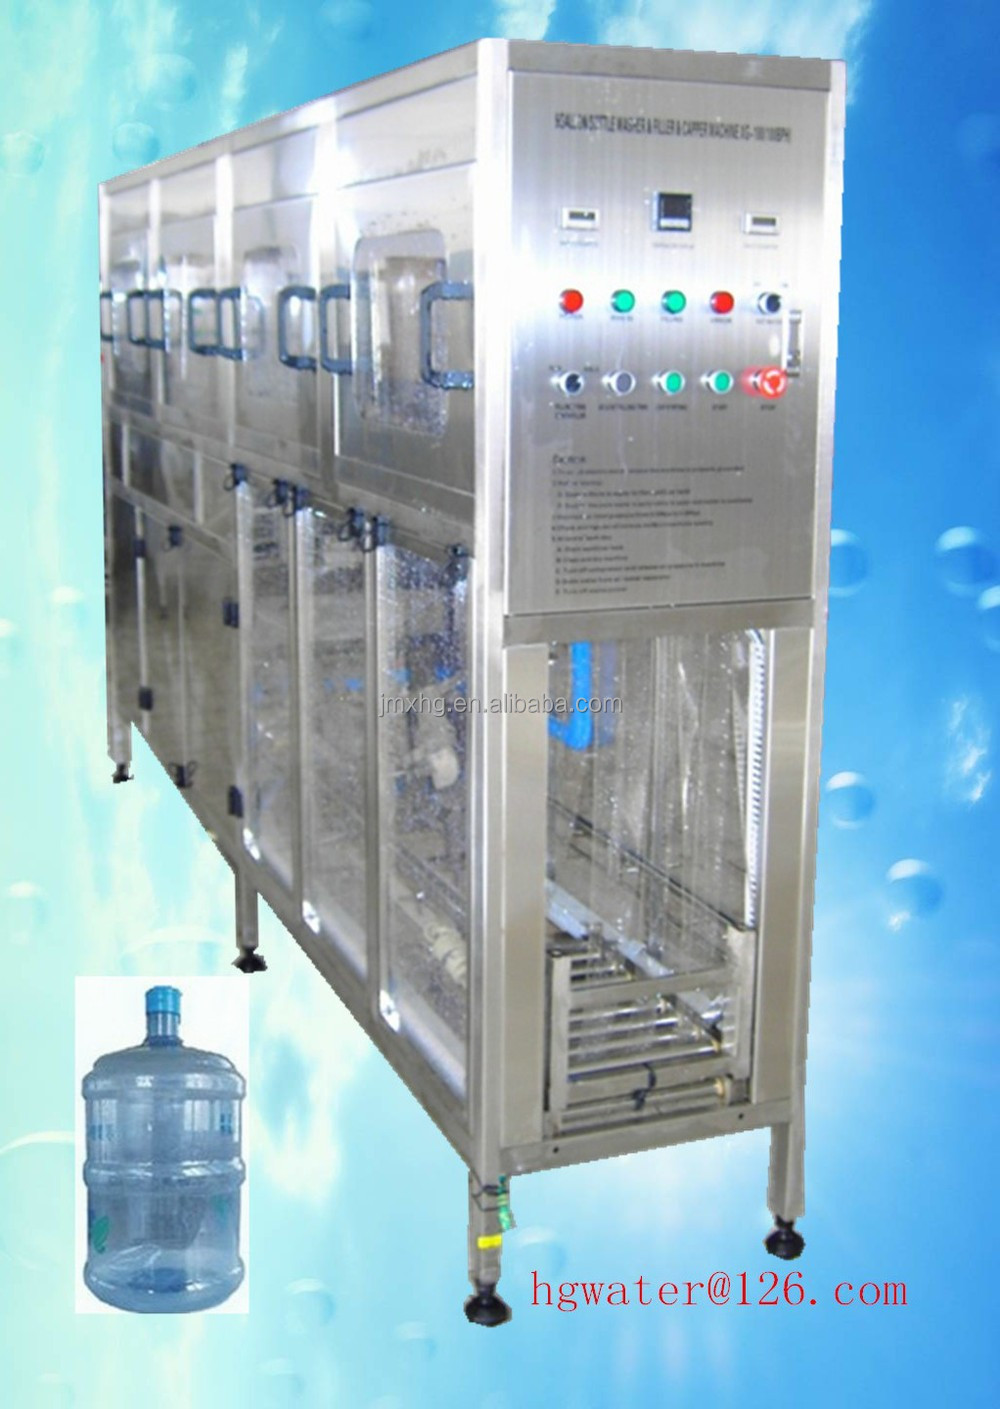 Factory surpplying XG-100(100BPH) model 5 gallon bottle filling machine